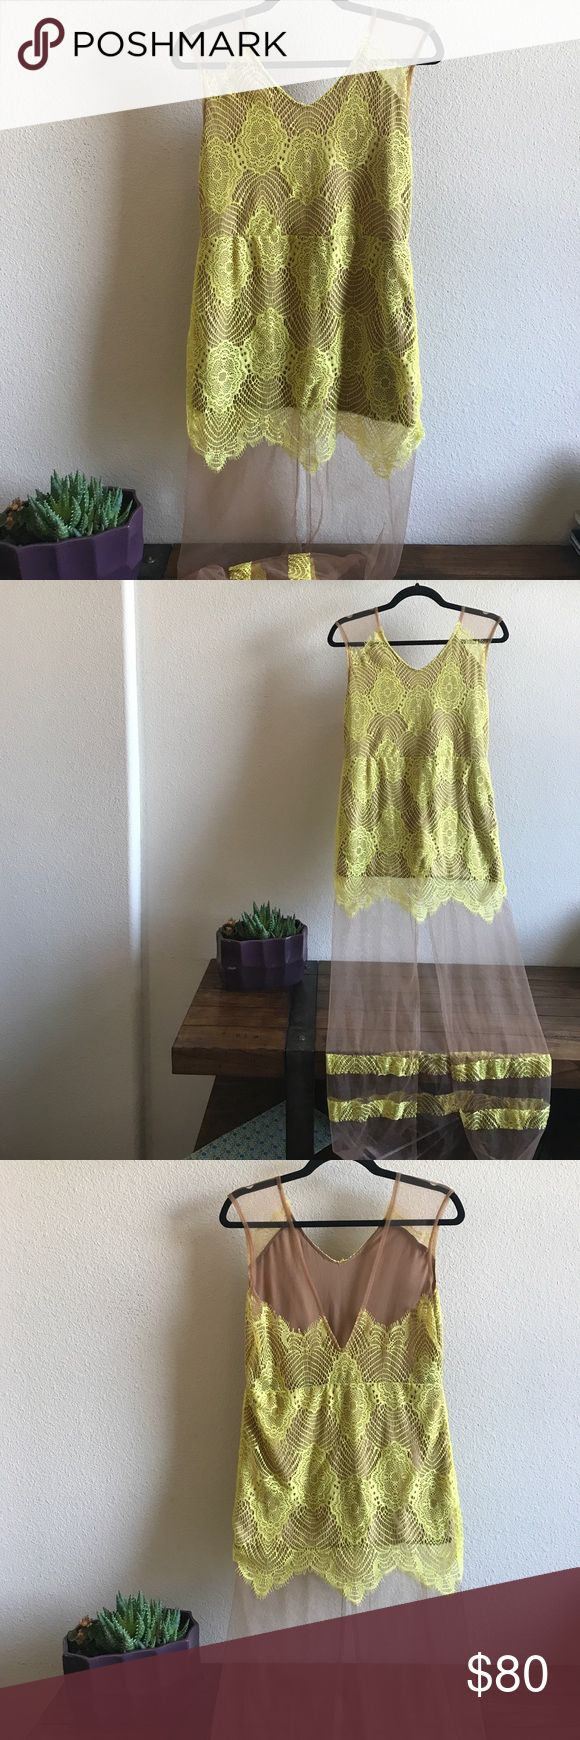 "Free People Nude & Neon Maxi Dress This is very stretchy and light and airy. Excellent condition with no holes, snags or stains. 18"" armpit to armpit and the non-nude portion is 32"" long. Free People Dresses Maxi"